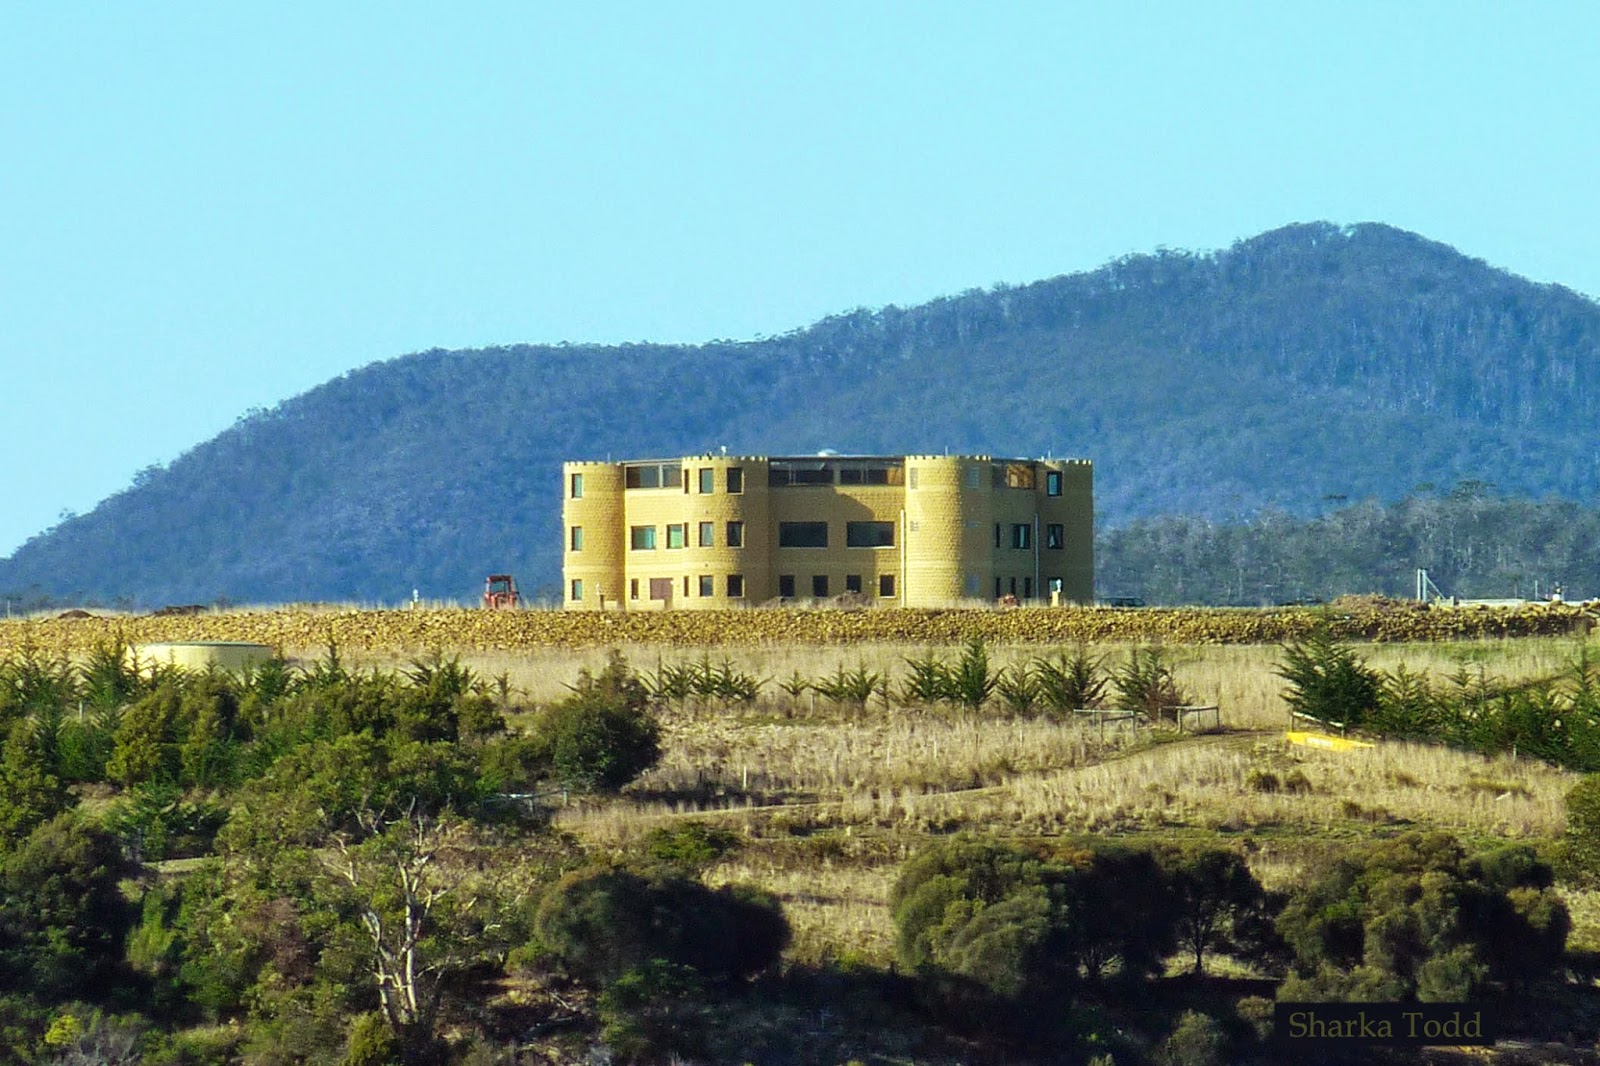 Mansion/castle located on Boomer Island, Tasmania owned by Gunter Jaeger